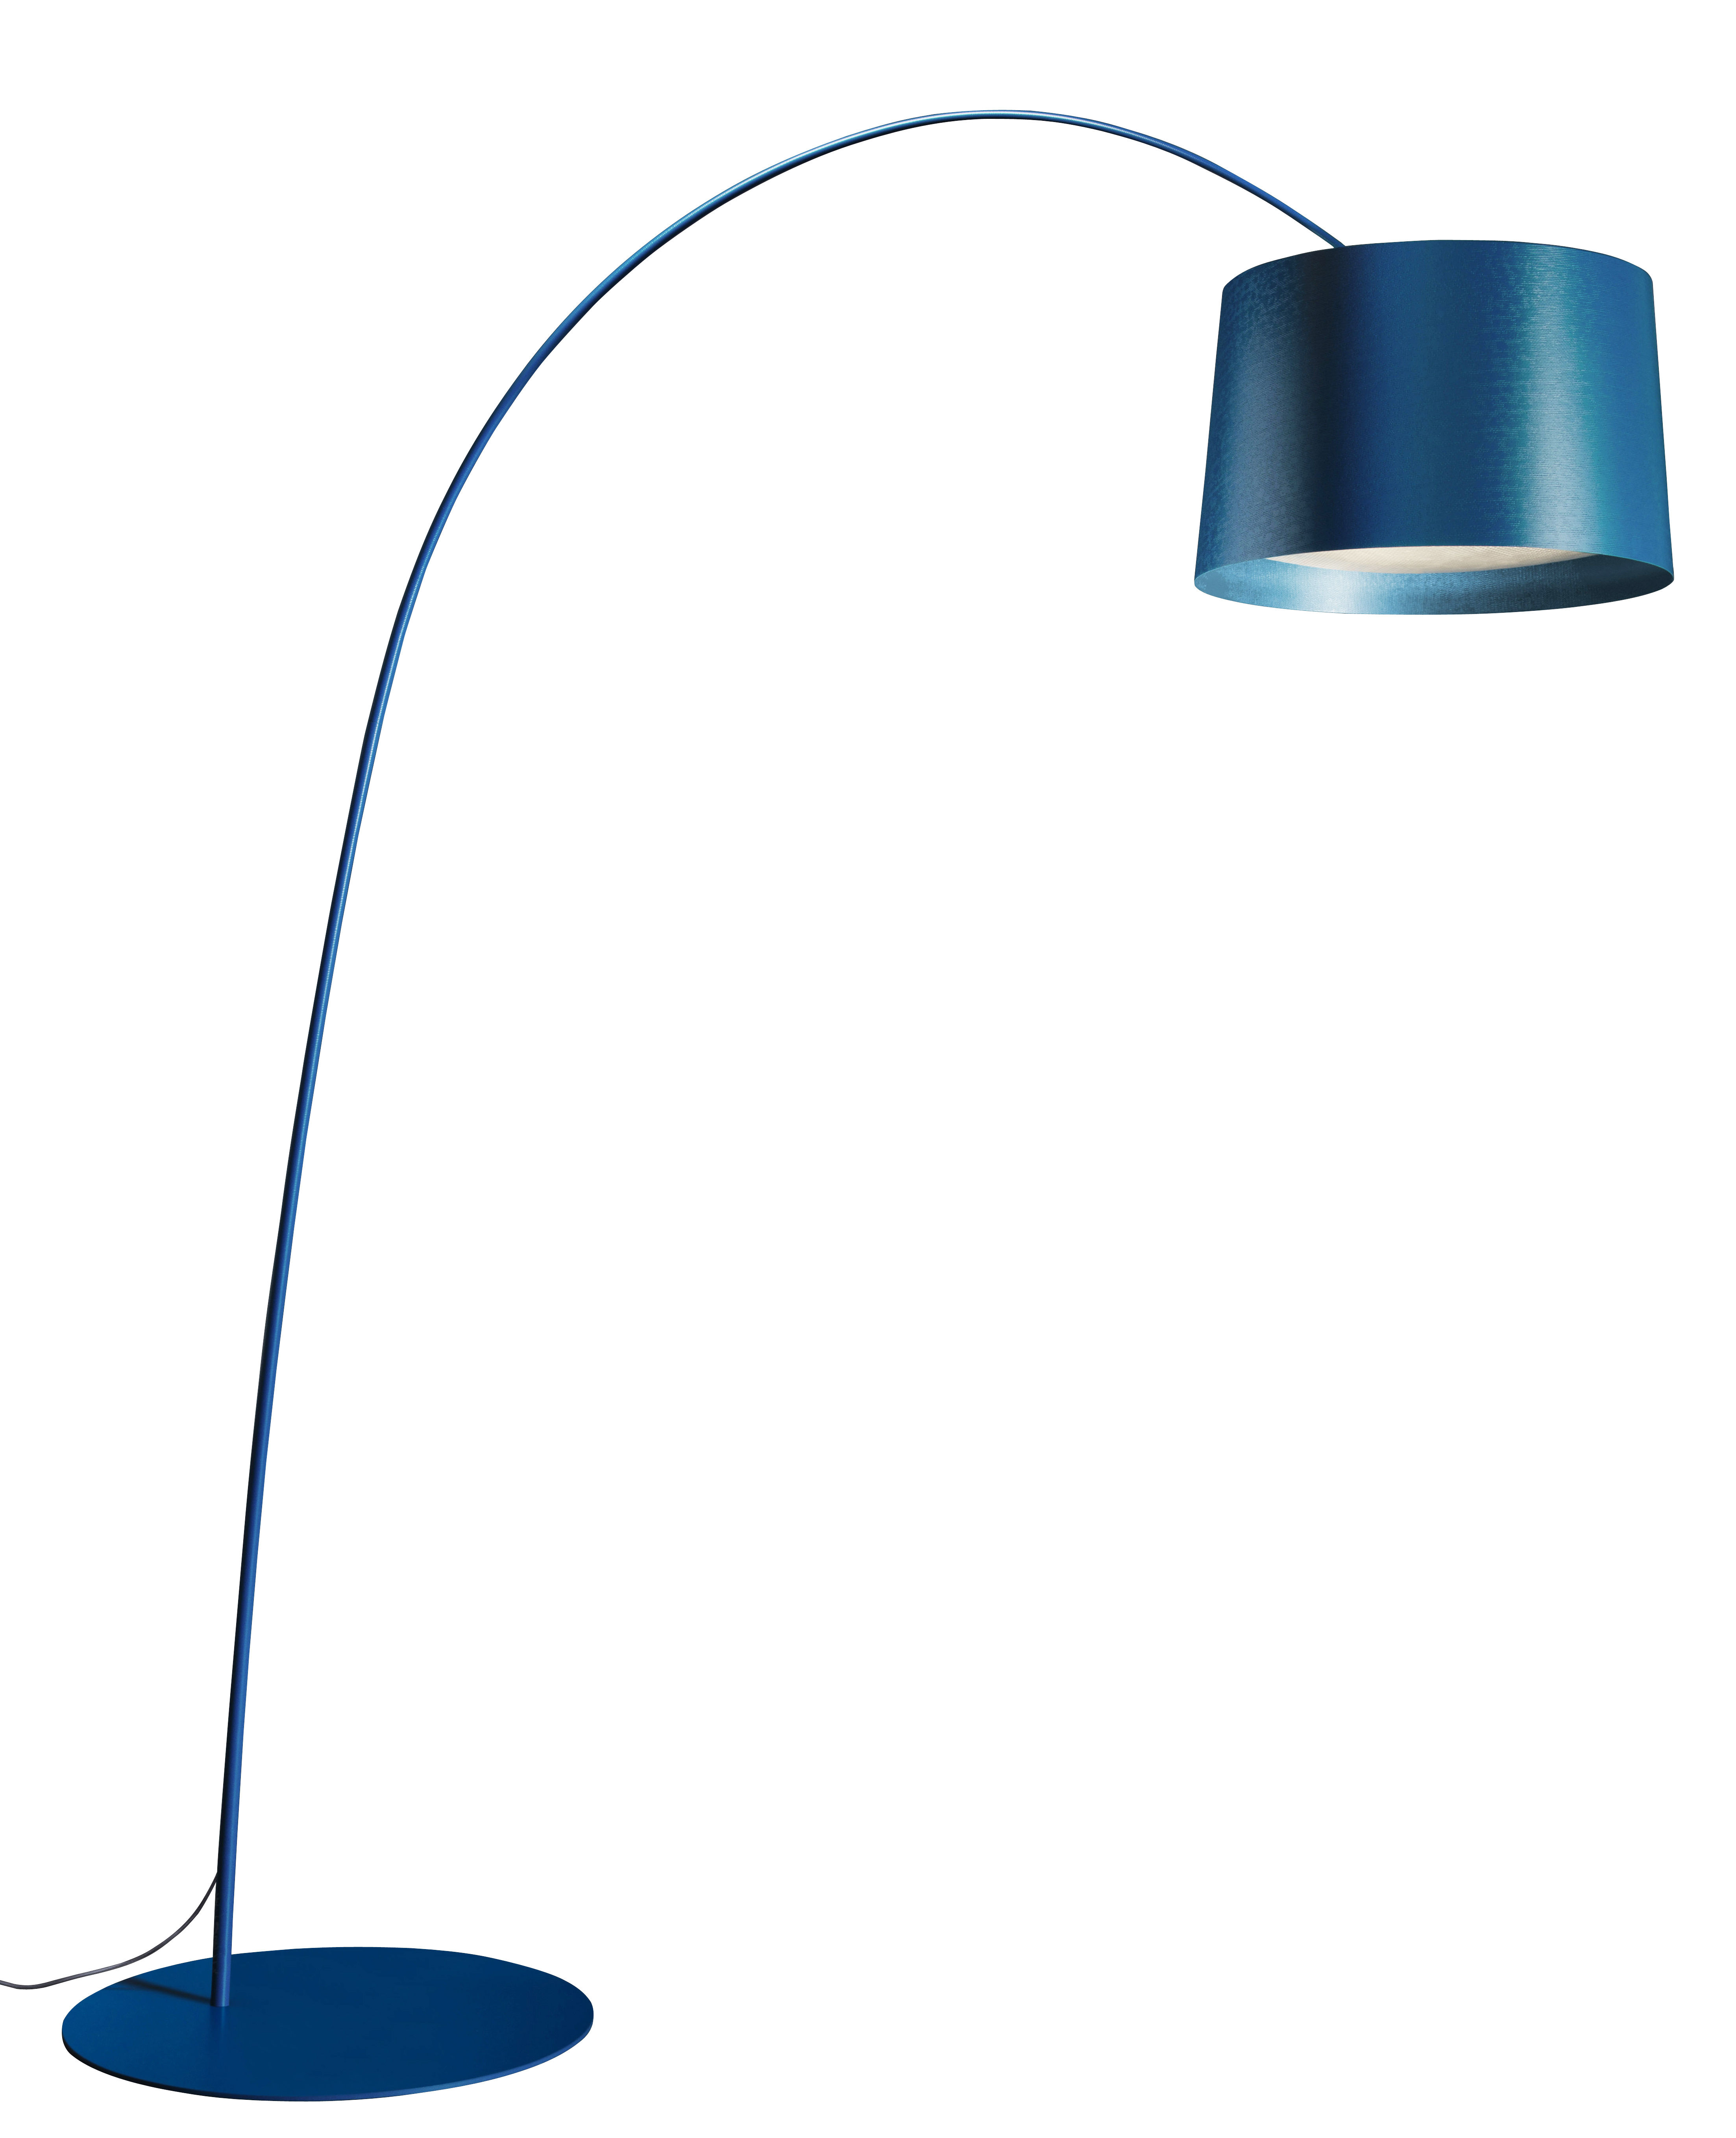 Lighting - Floor lamps - Twiggy Floor lamp - LED by Foscarini - Blue - Composite material, Fibreglass, Varnished metal